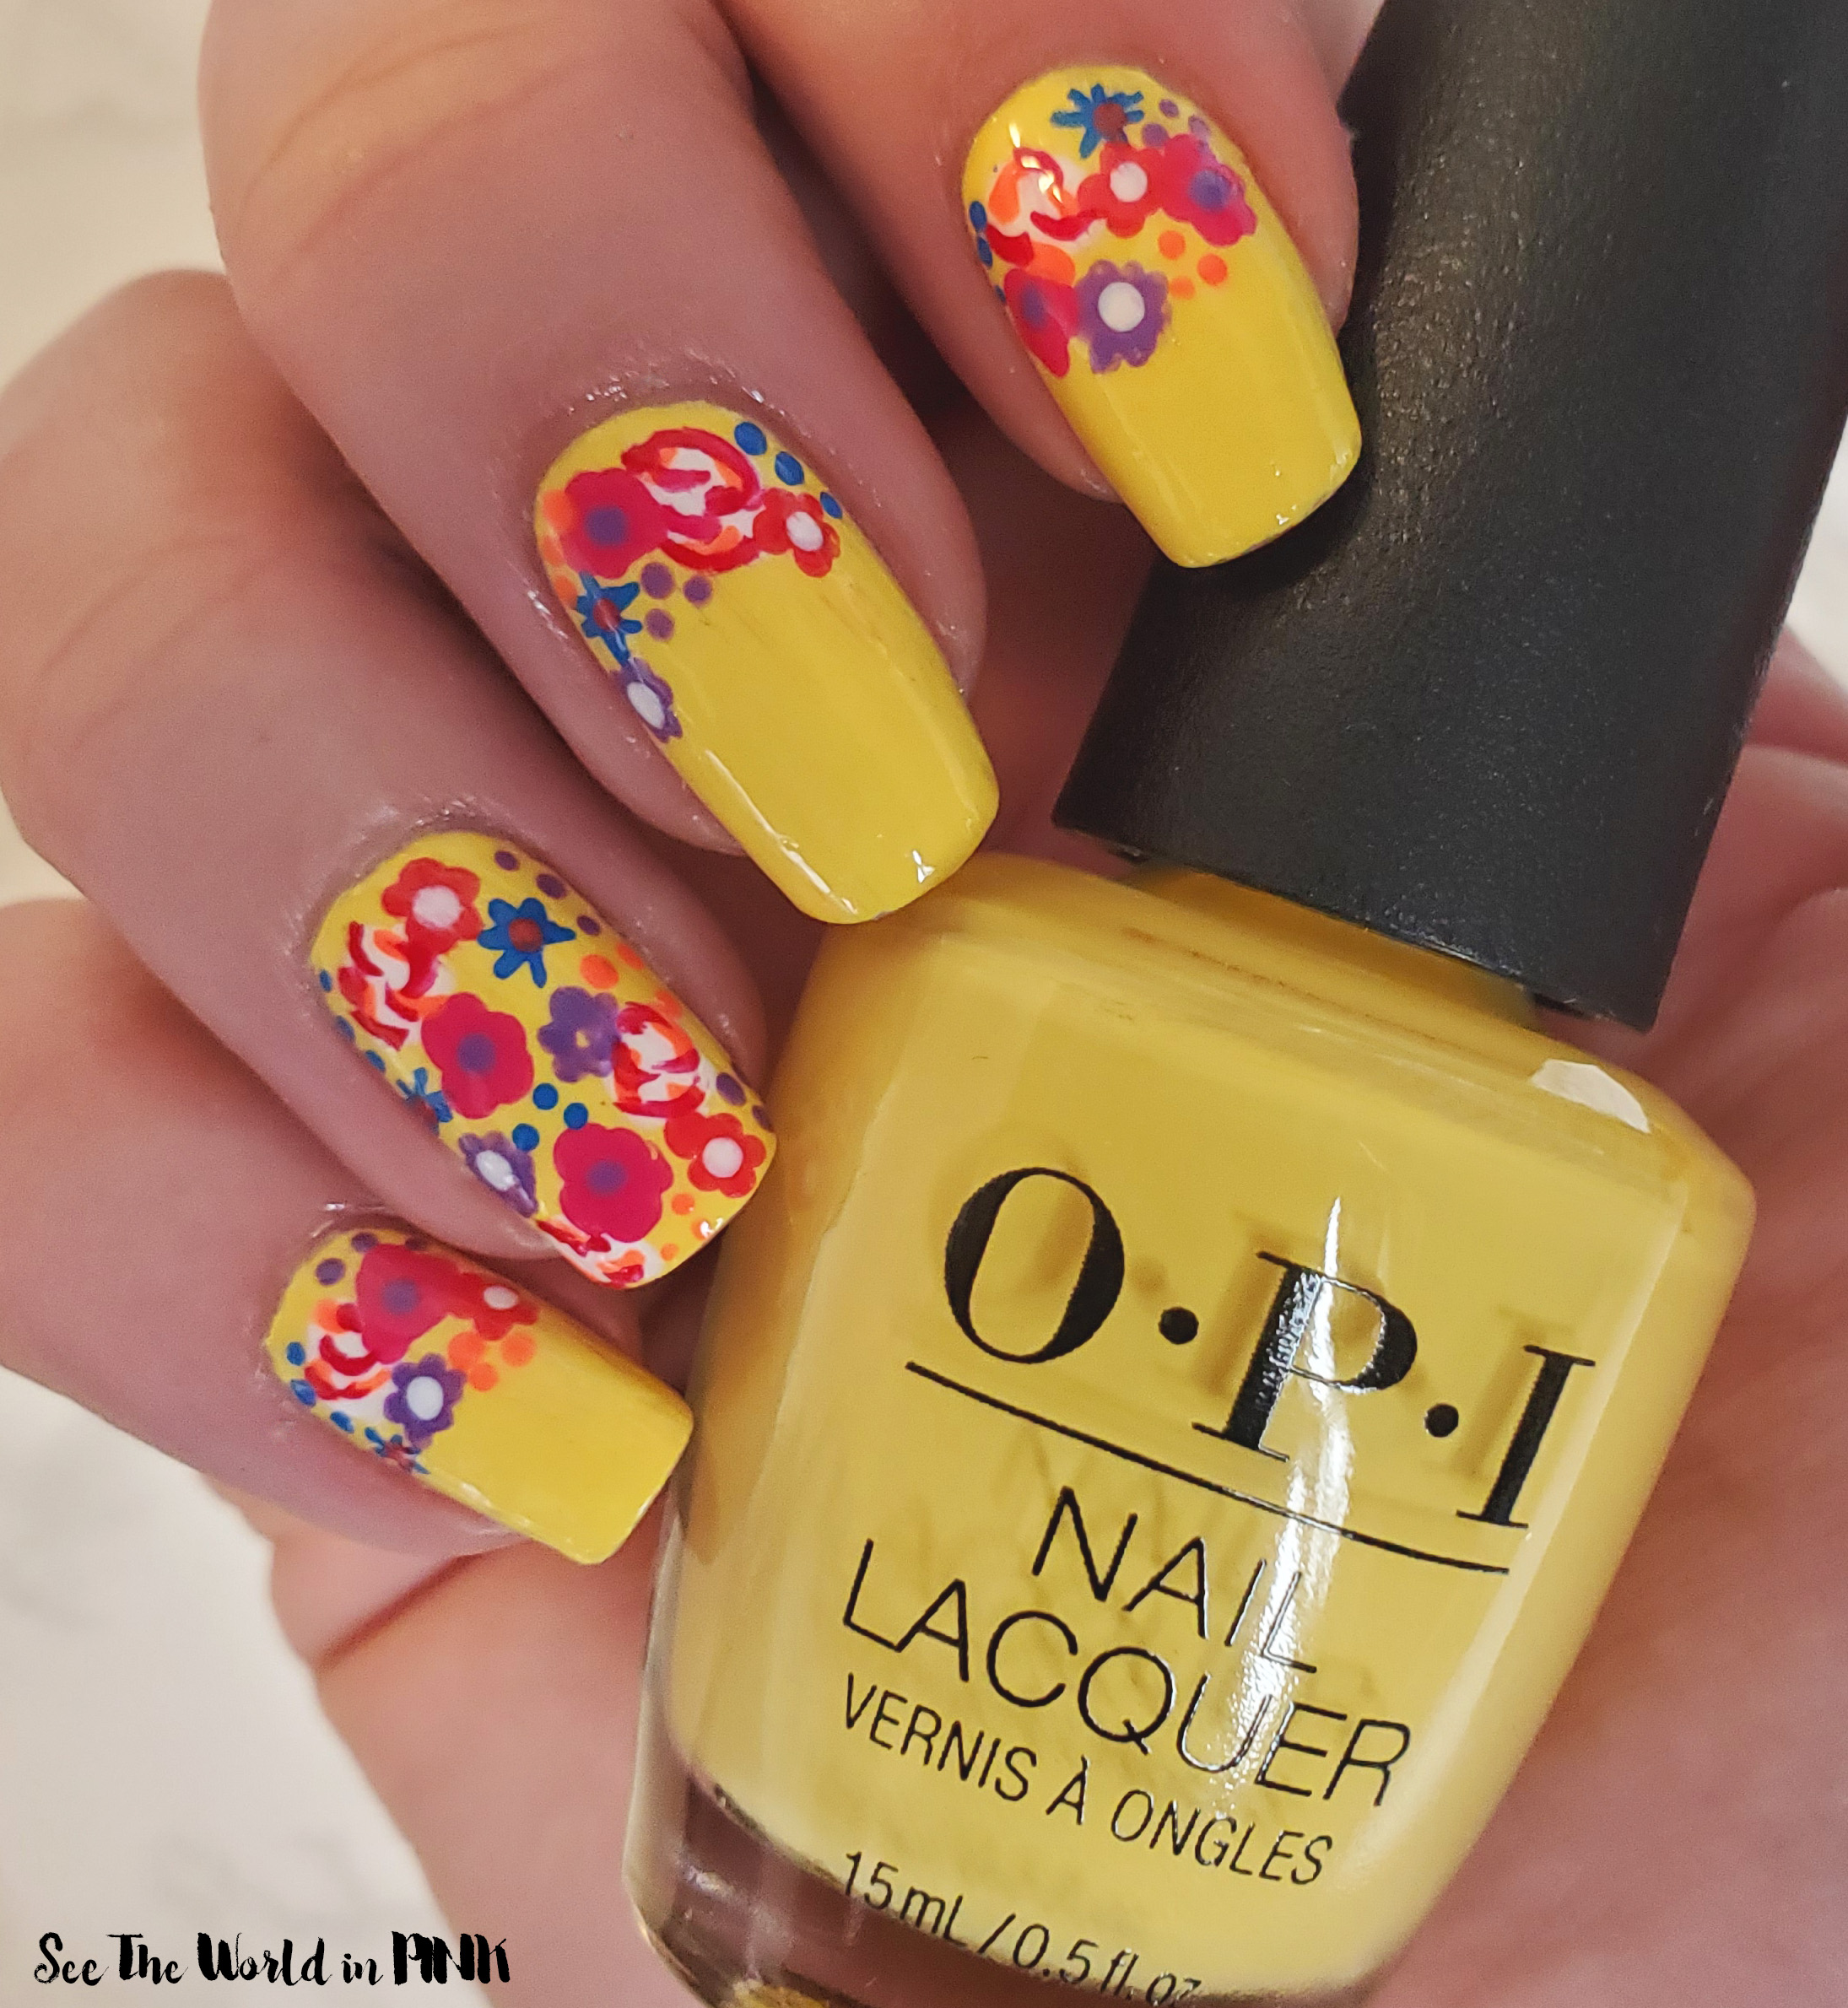 Manicure Monday - Colourful Spring Flower Nail Art